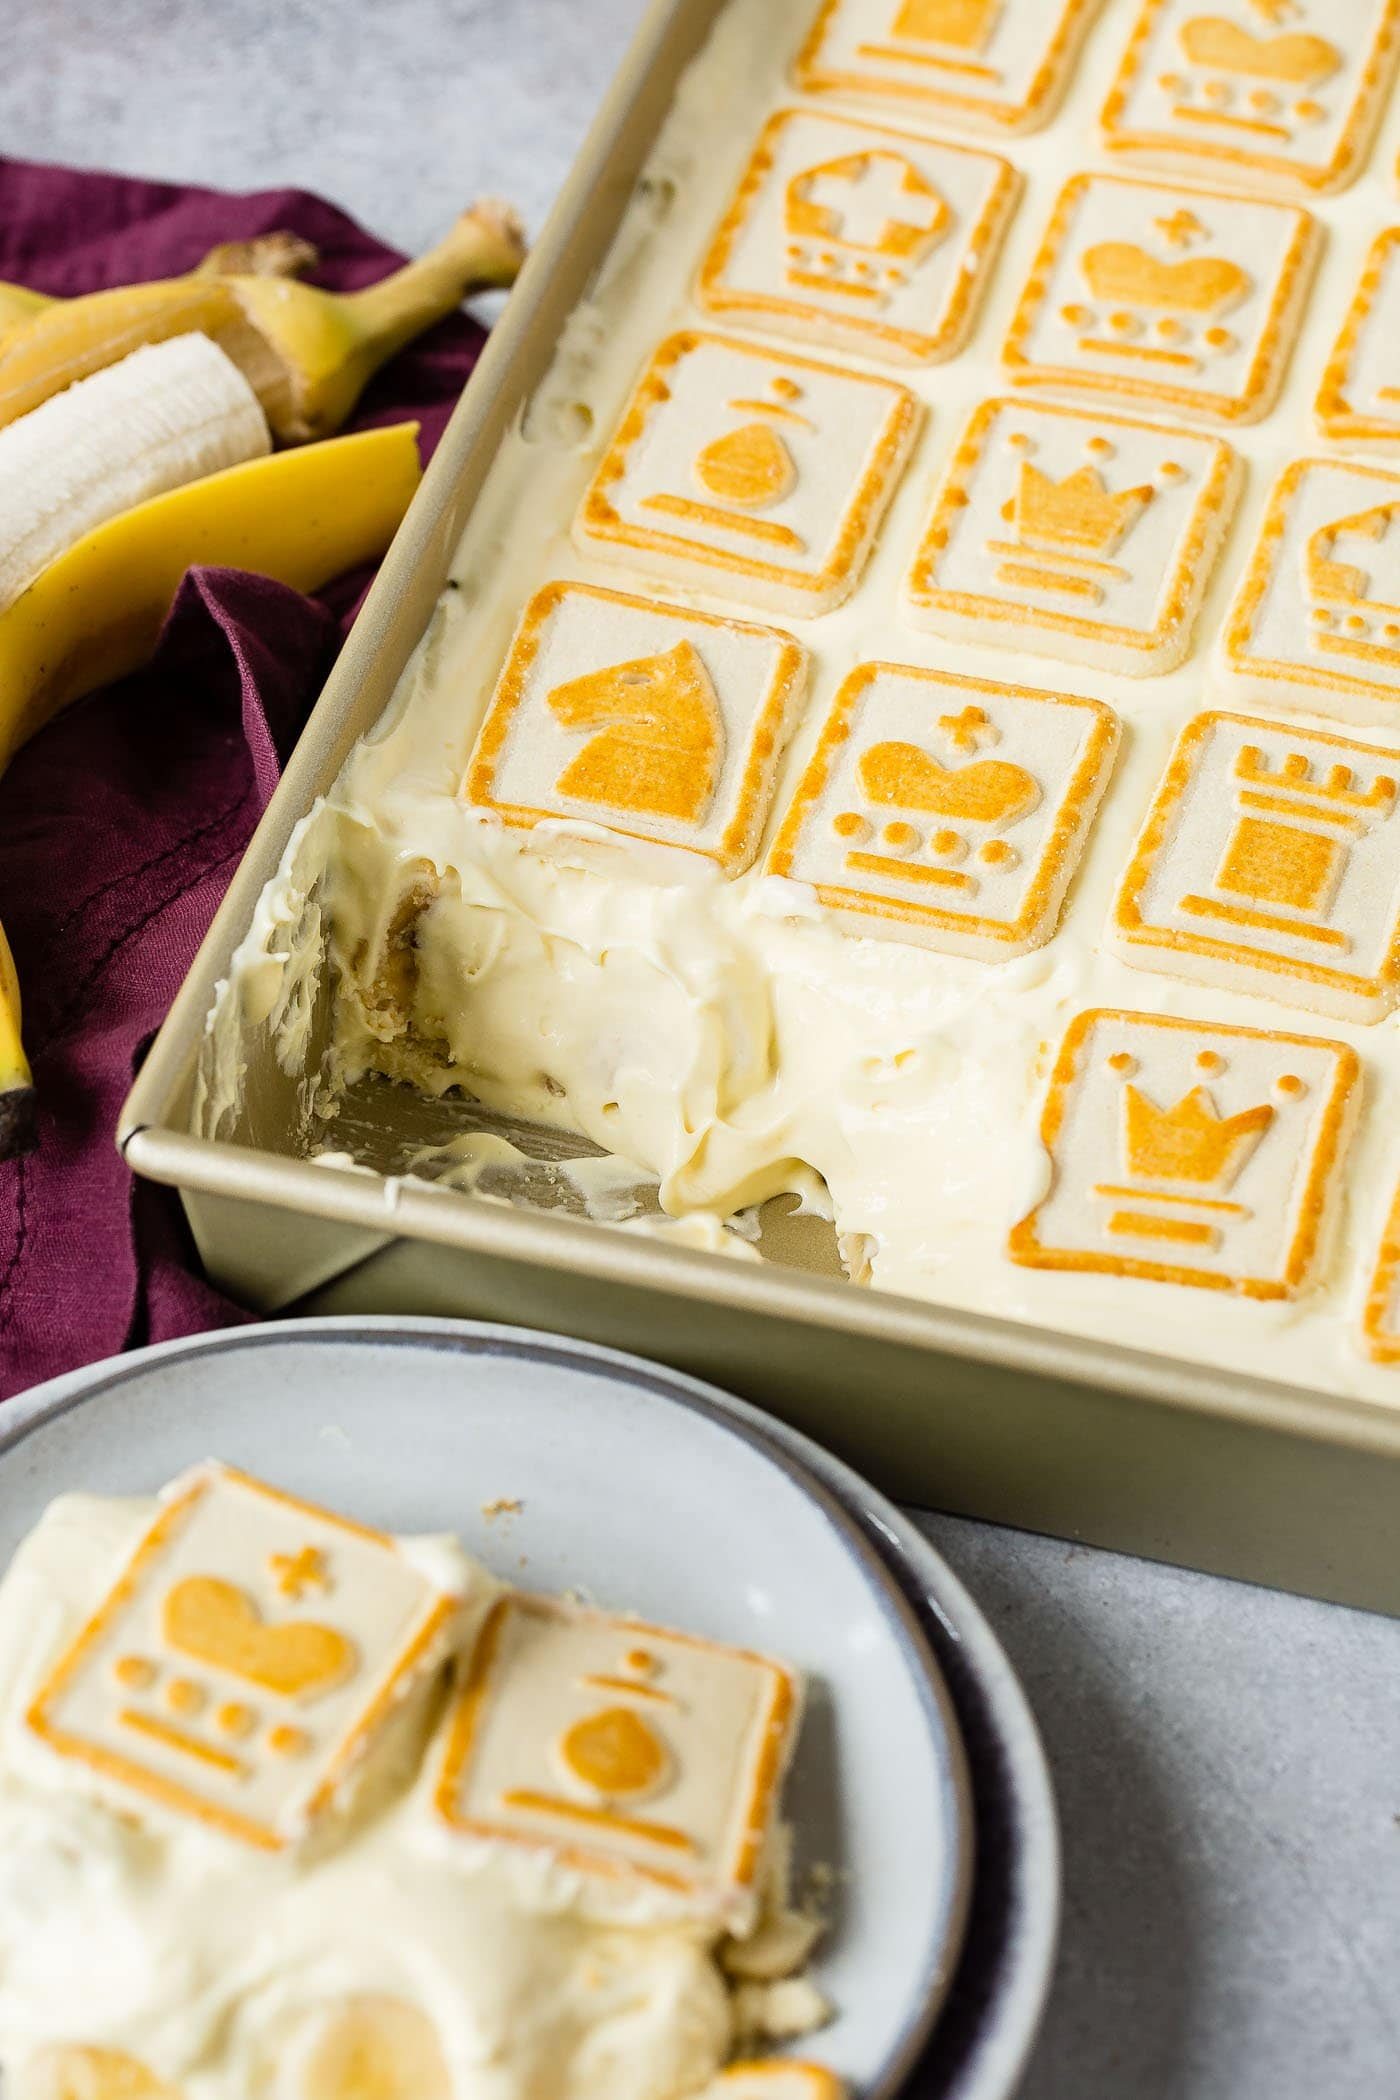 A cake pan filled with Paula Deen's Not Yo Momma's Banana Pudding. A serving has been removed and put on a dessert plate. There are buttery chessman cookies covering the top. A peeled banana is next to the pan of pudding.